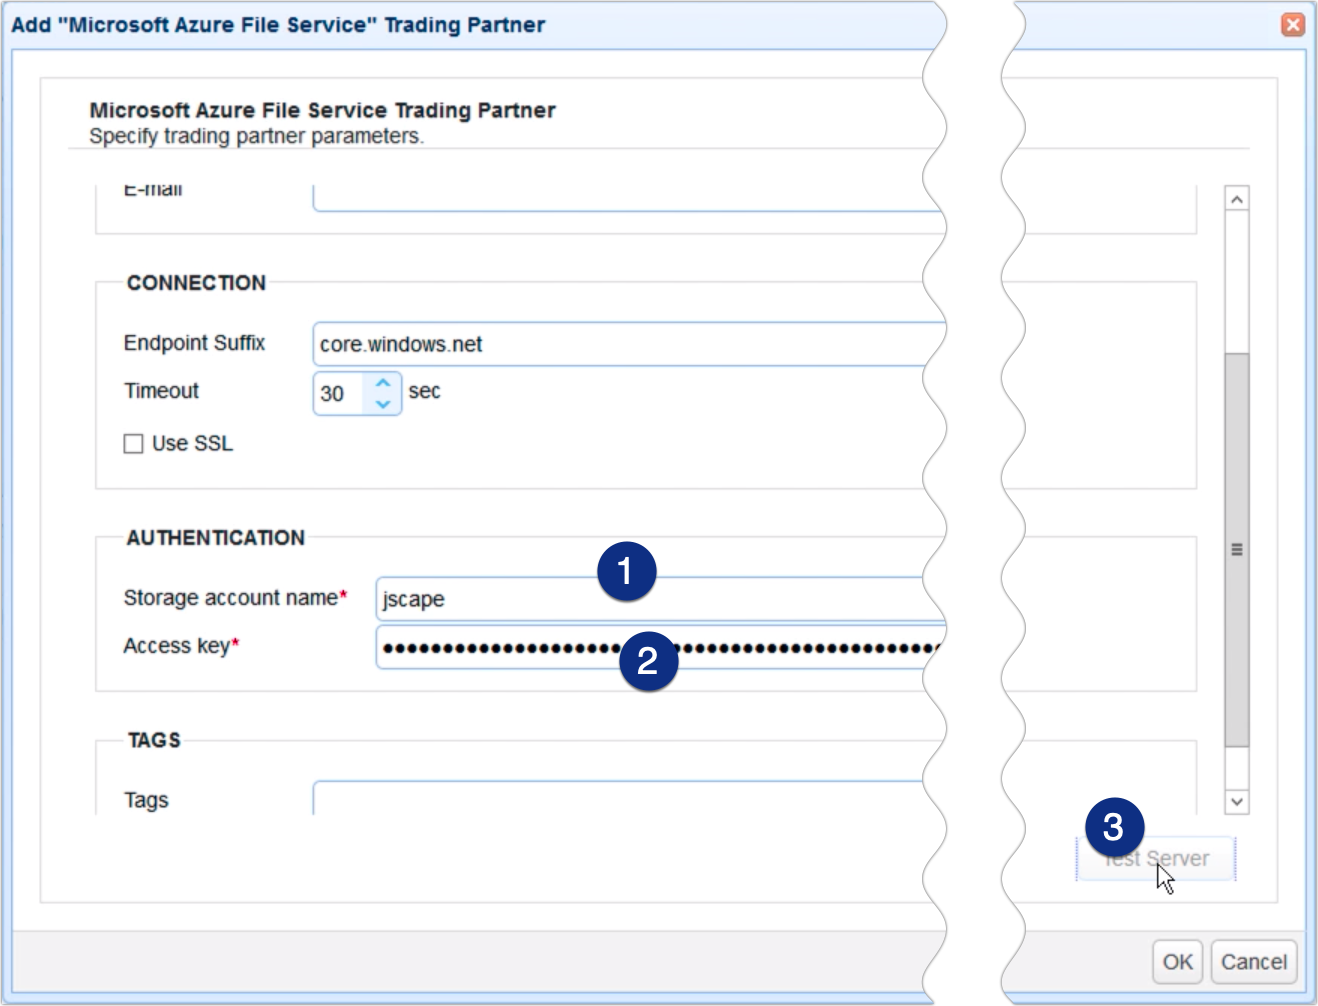 copy data from azure to s3 - trading partner azure file service parameters 2